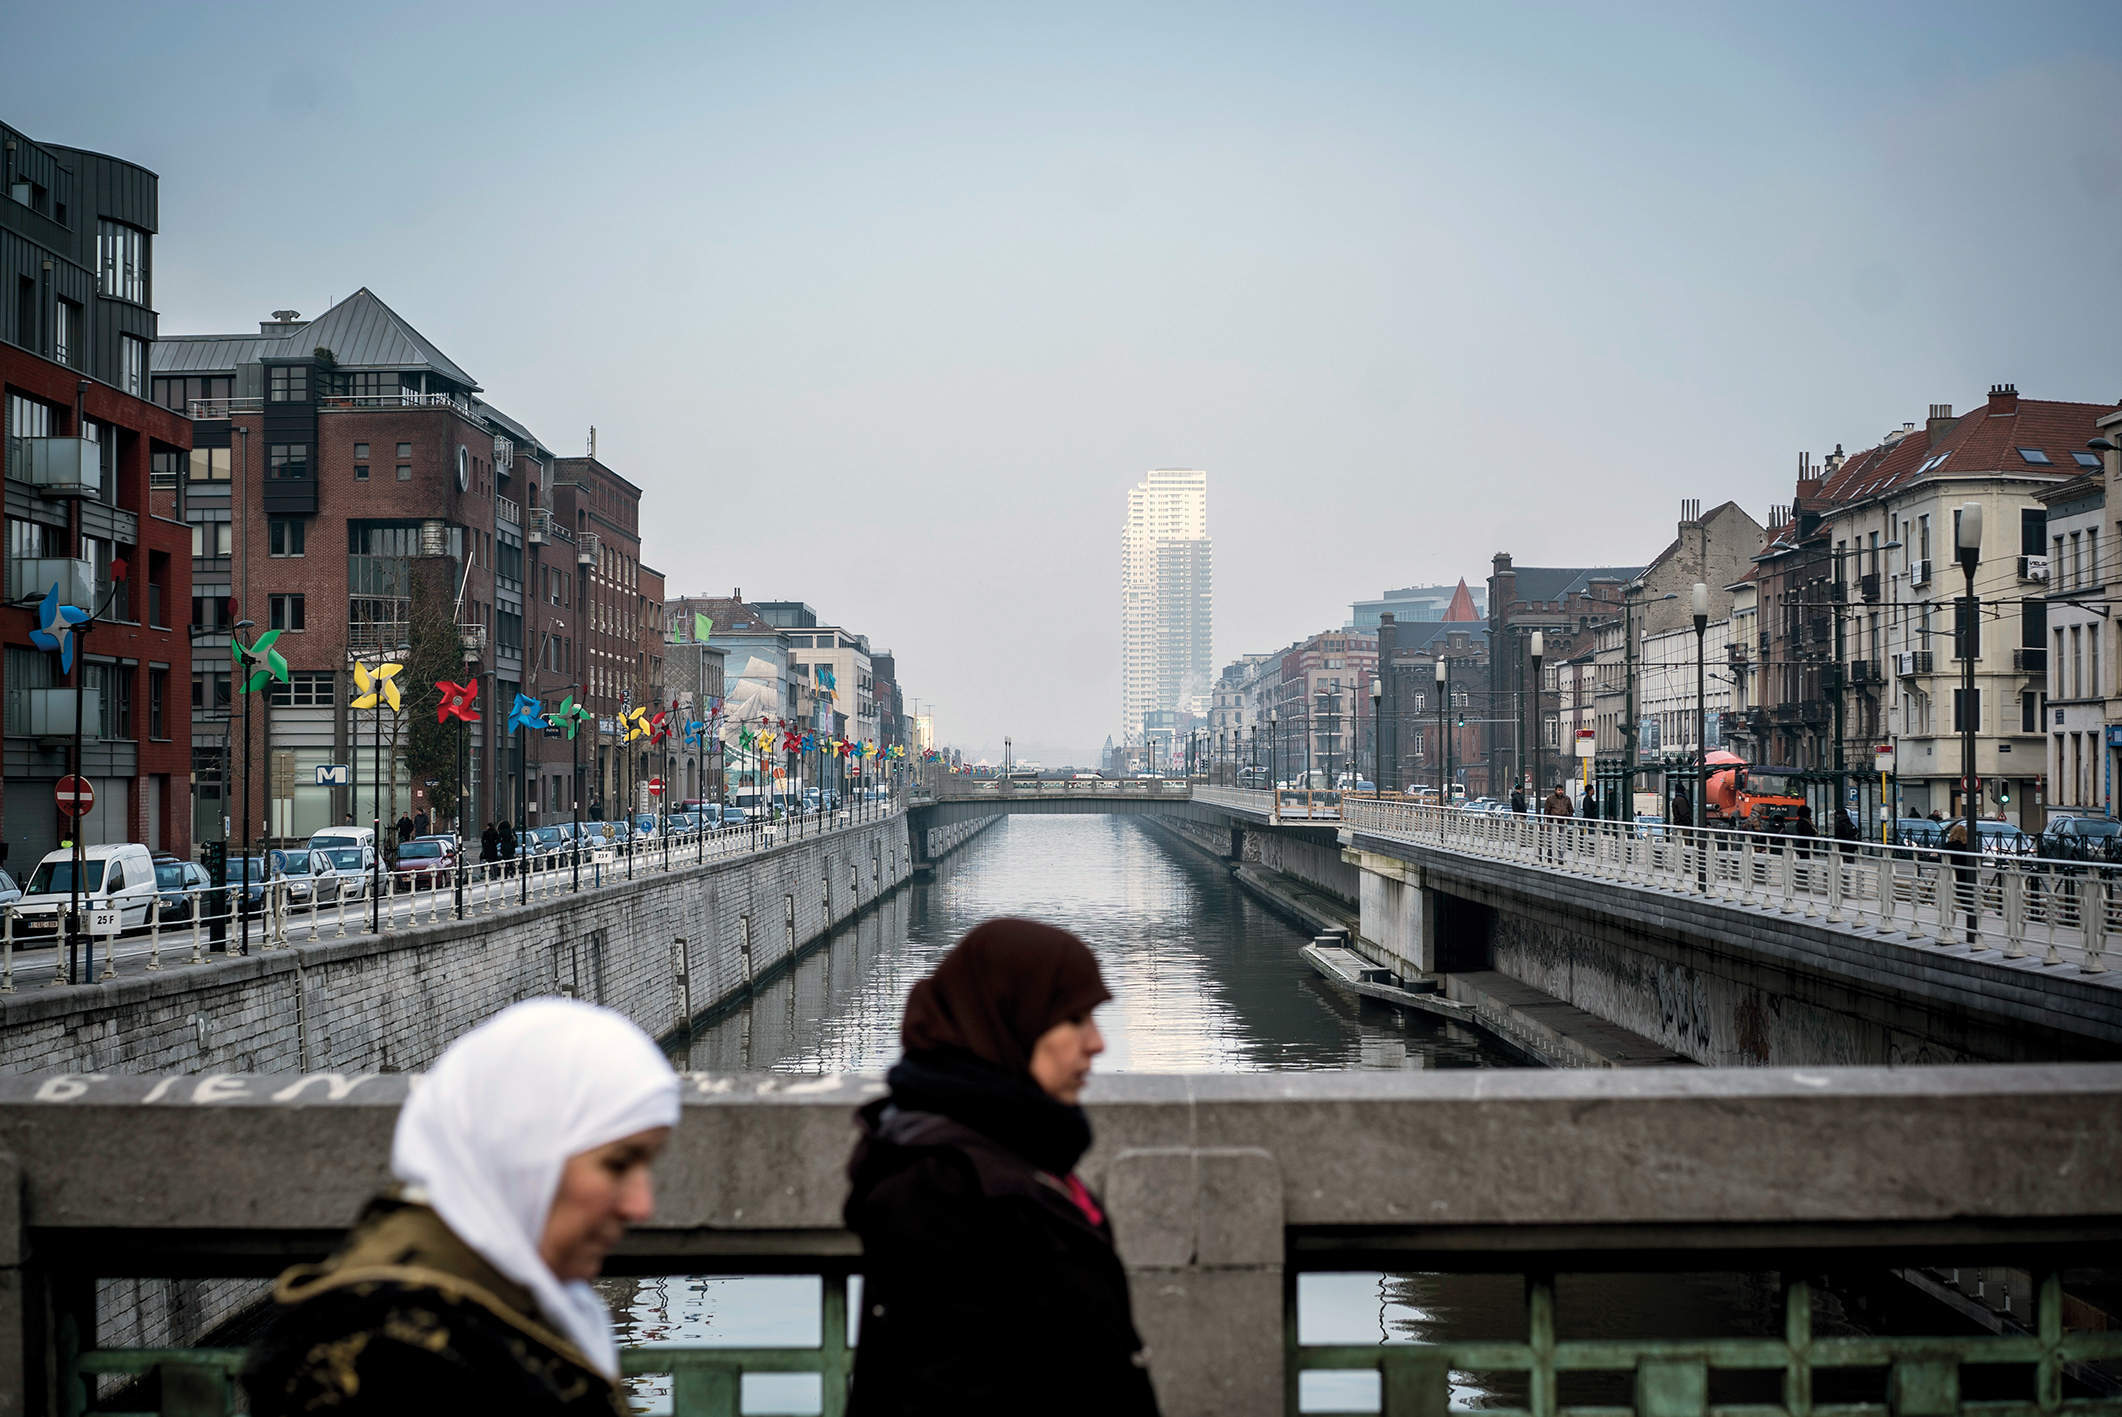 Travels in Belgium, the dysfunctional, fractured state at the heart of the EU